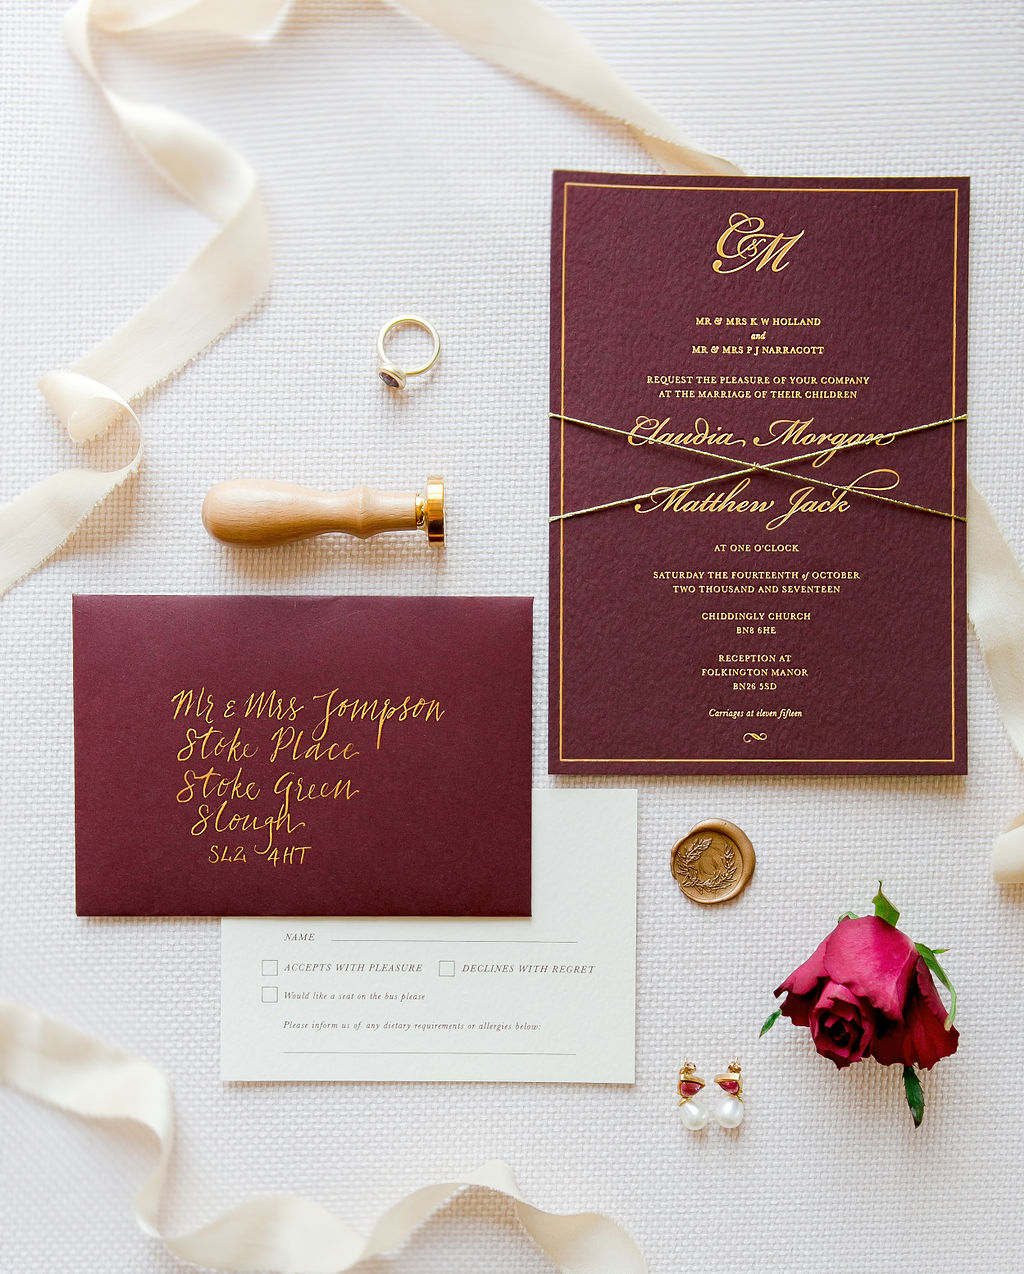 stoke_place_luxury_wedding_stationery_deep_red_gold_foil_ink_wax_seal_calligraphy_12.jpg